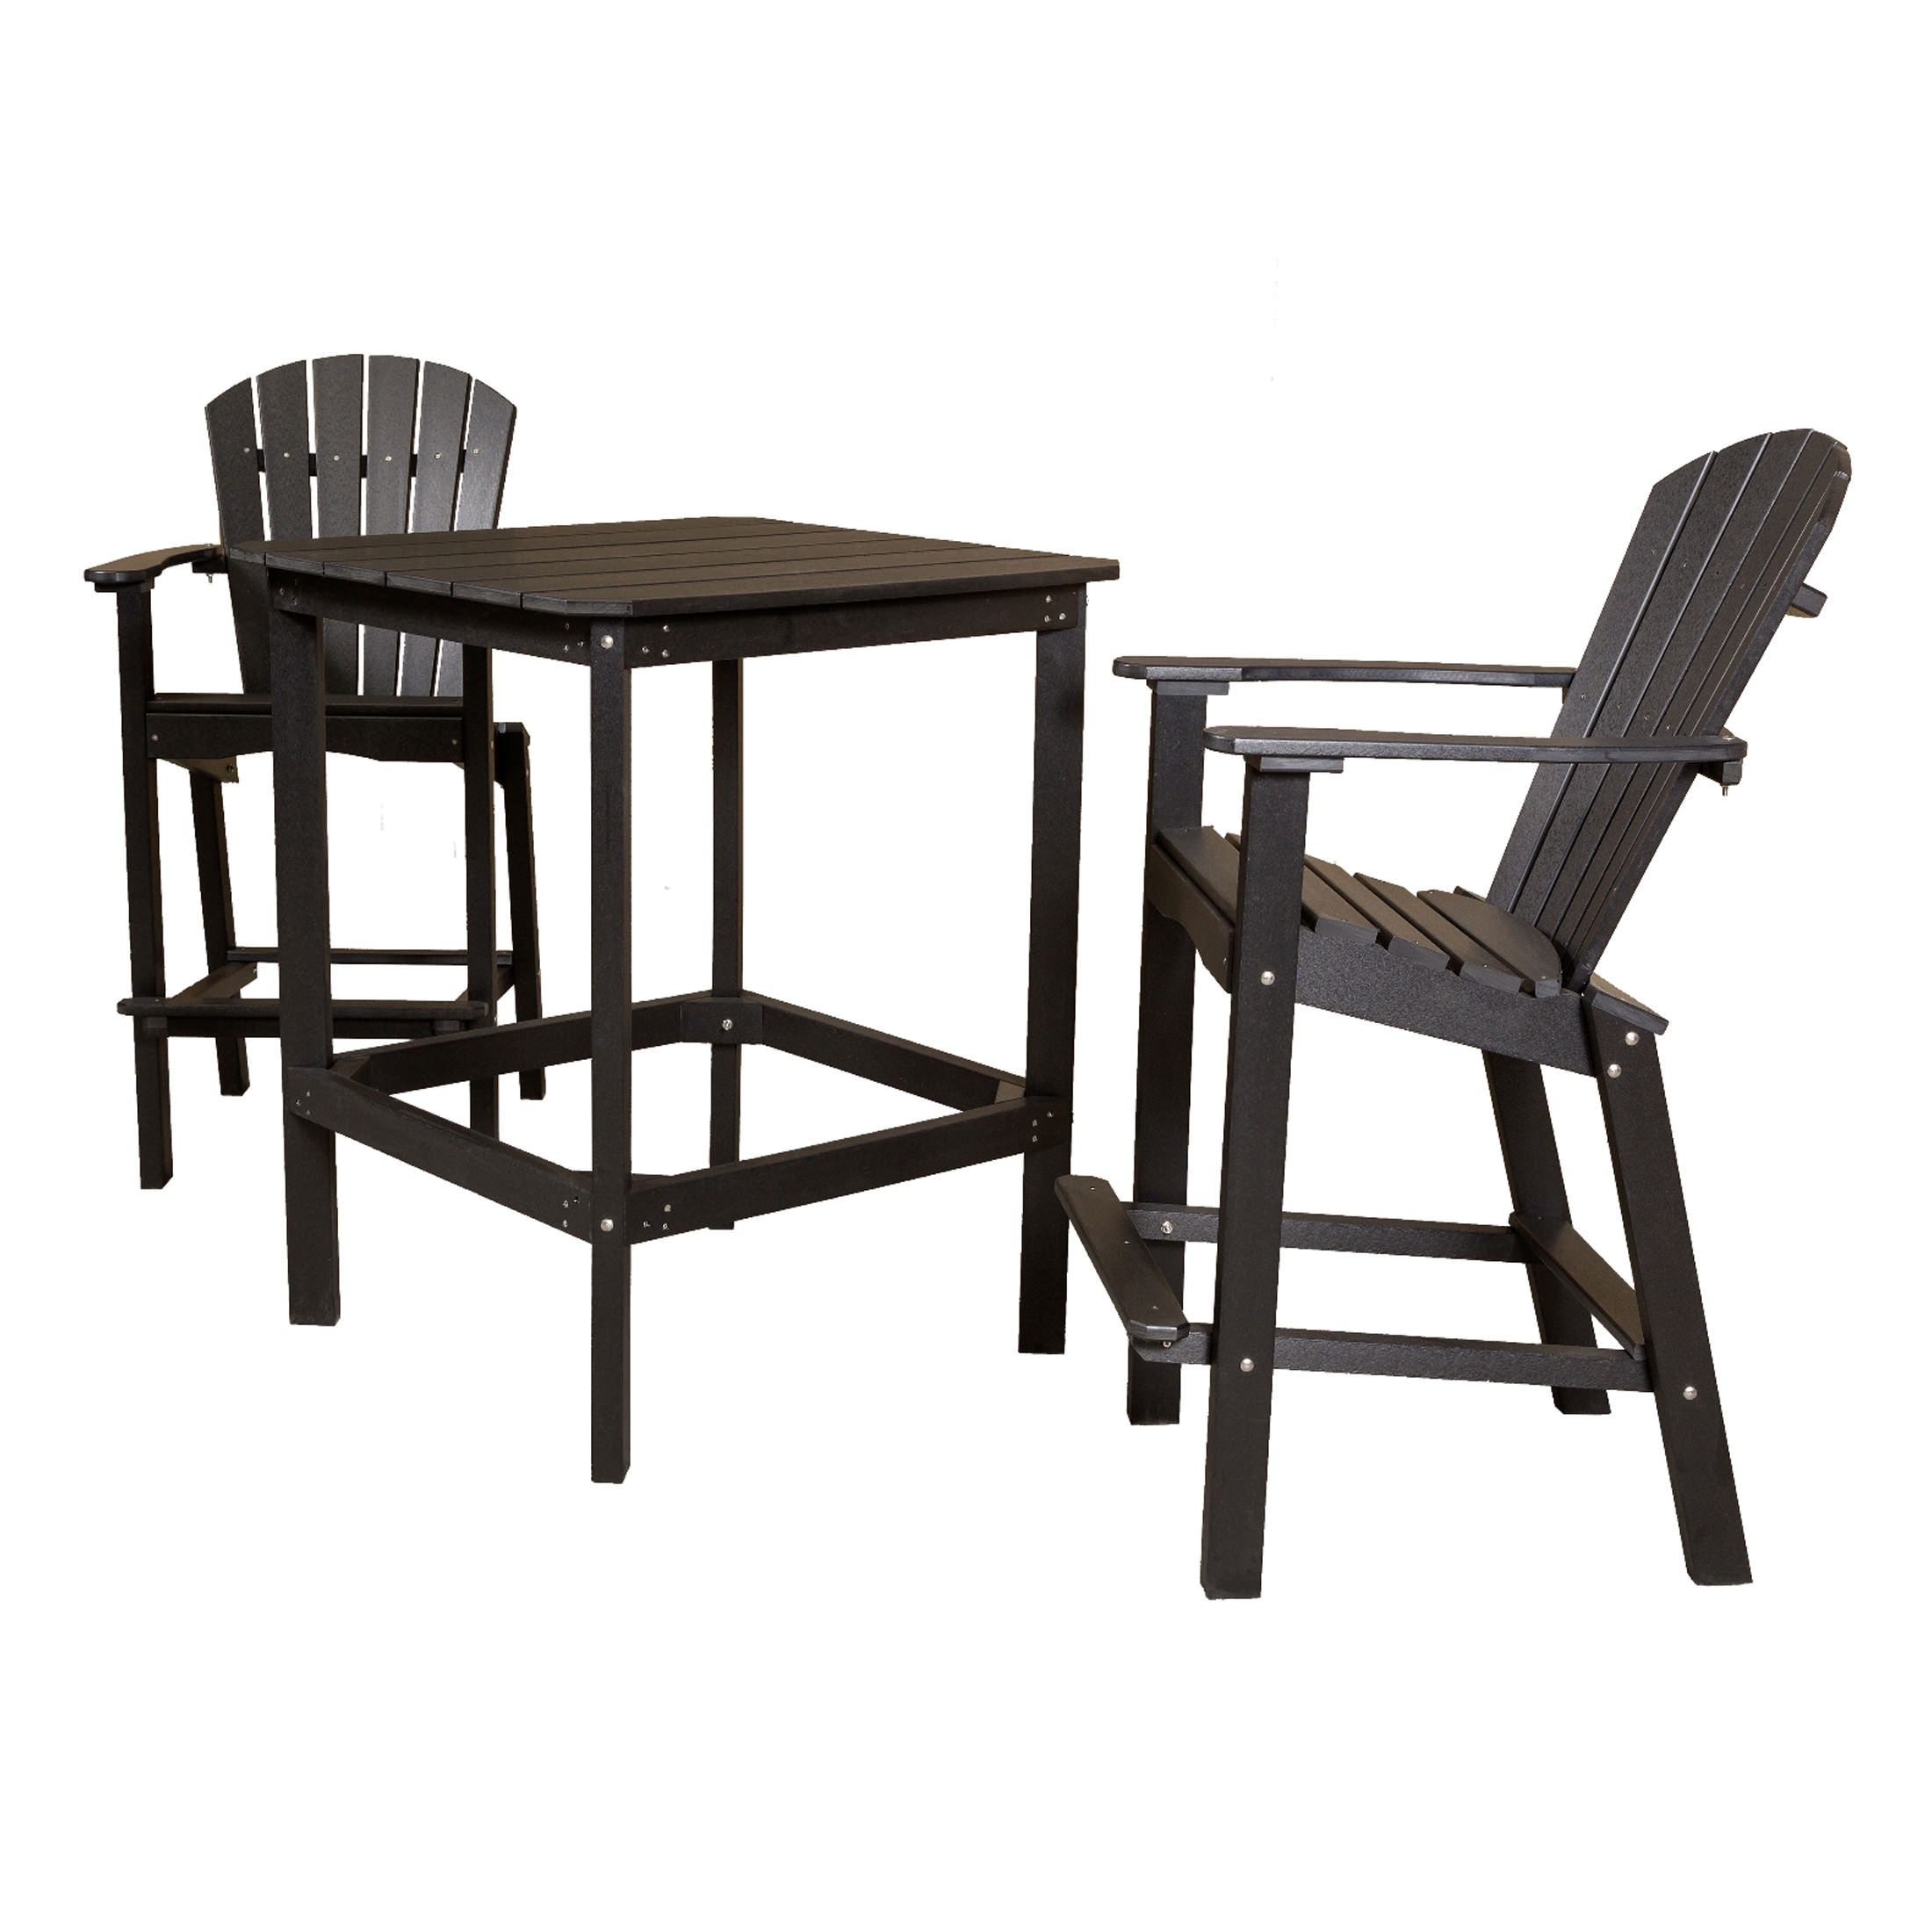 Little Cottage LCC-286 Classic Dining Set